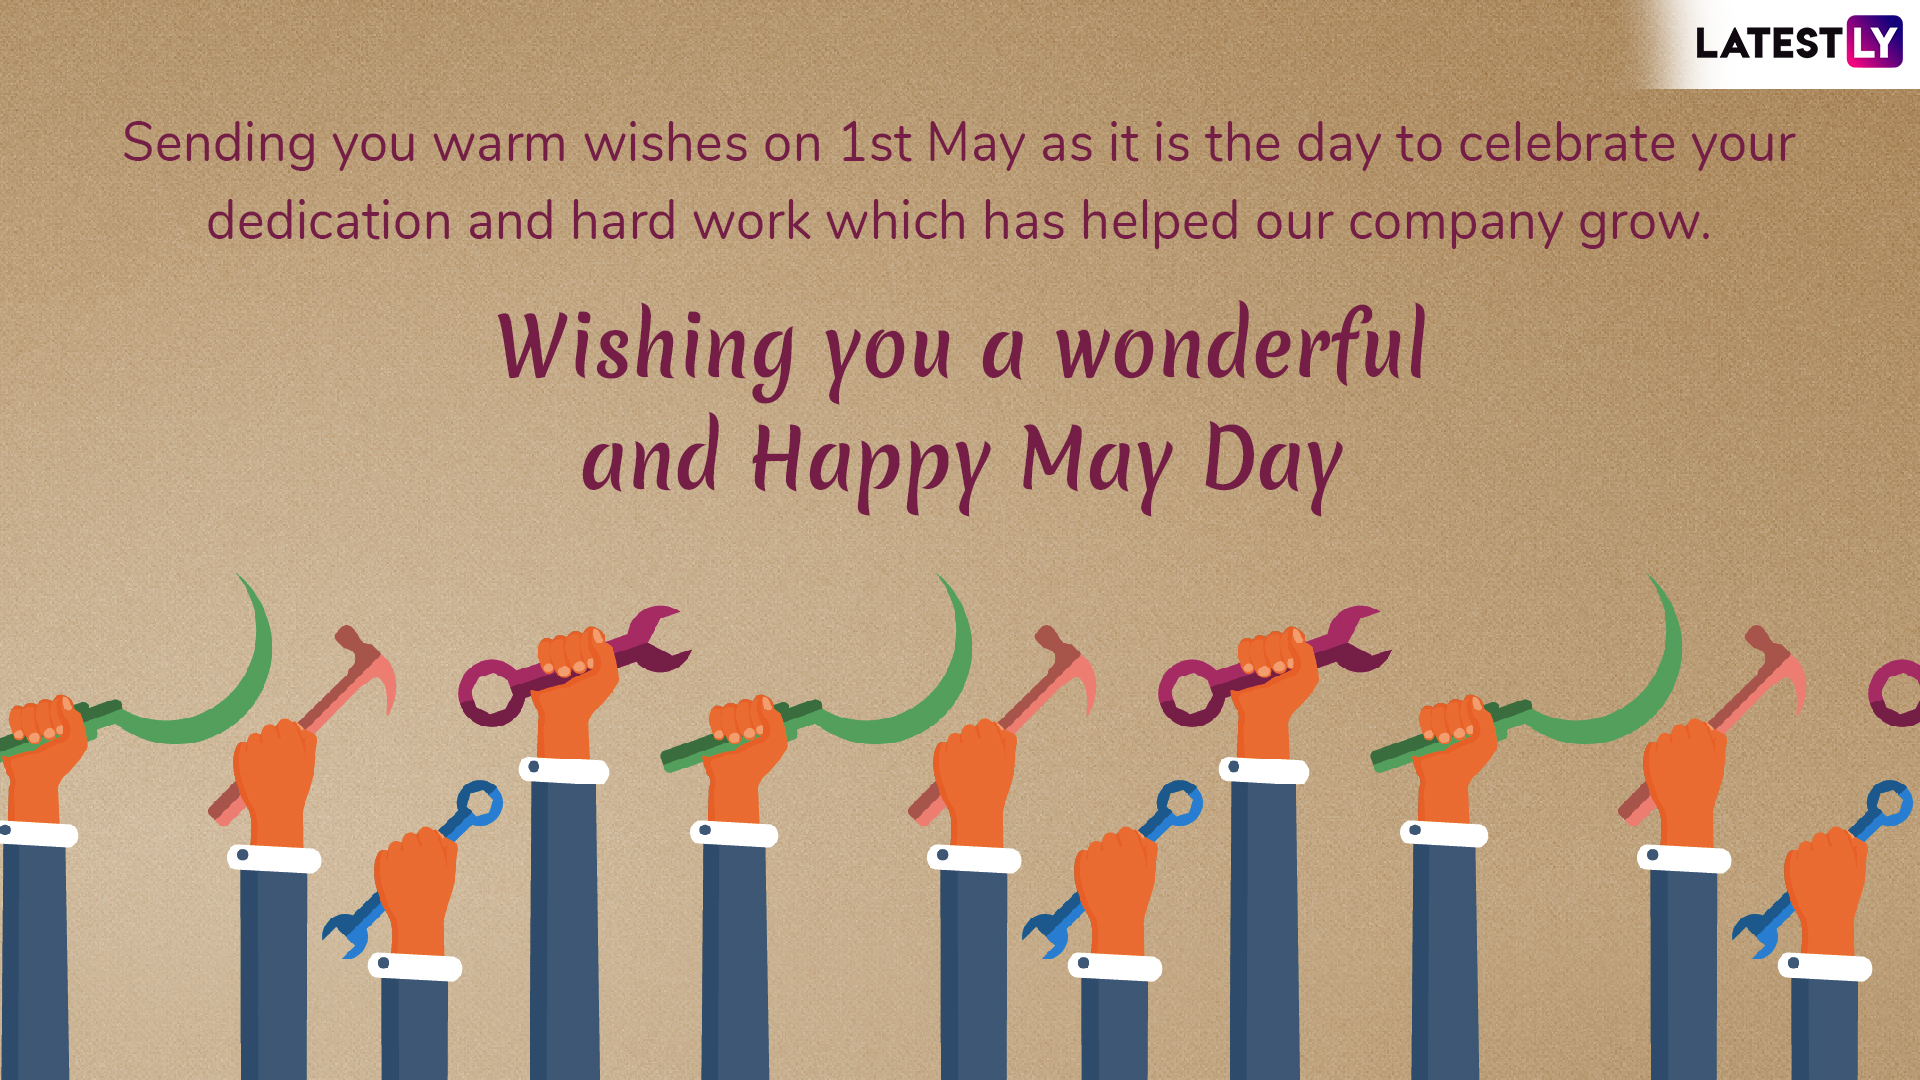 Happy May Day 2019 Wishes & Quotes: Best Labour Day WhatsApp